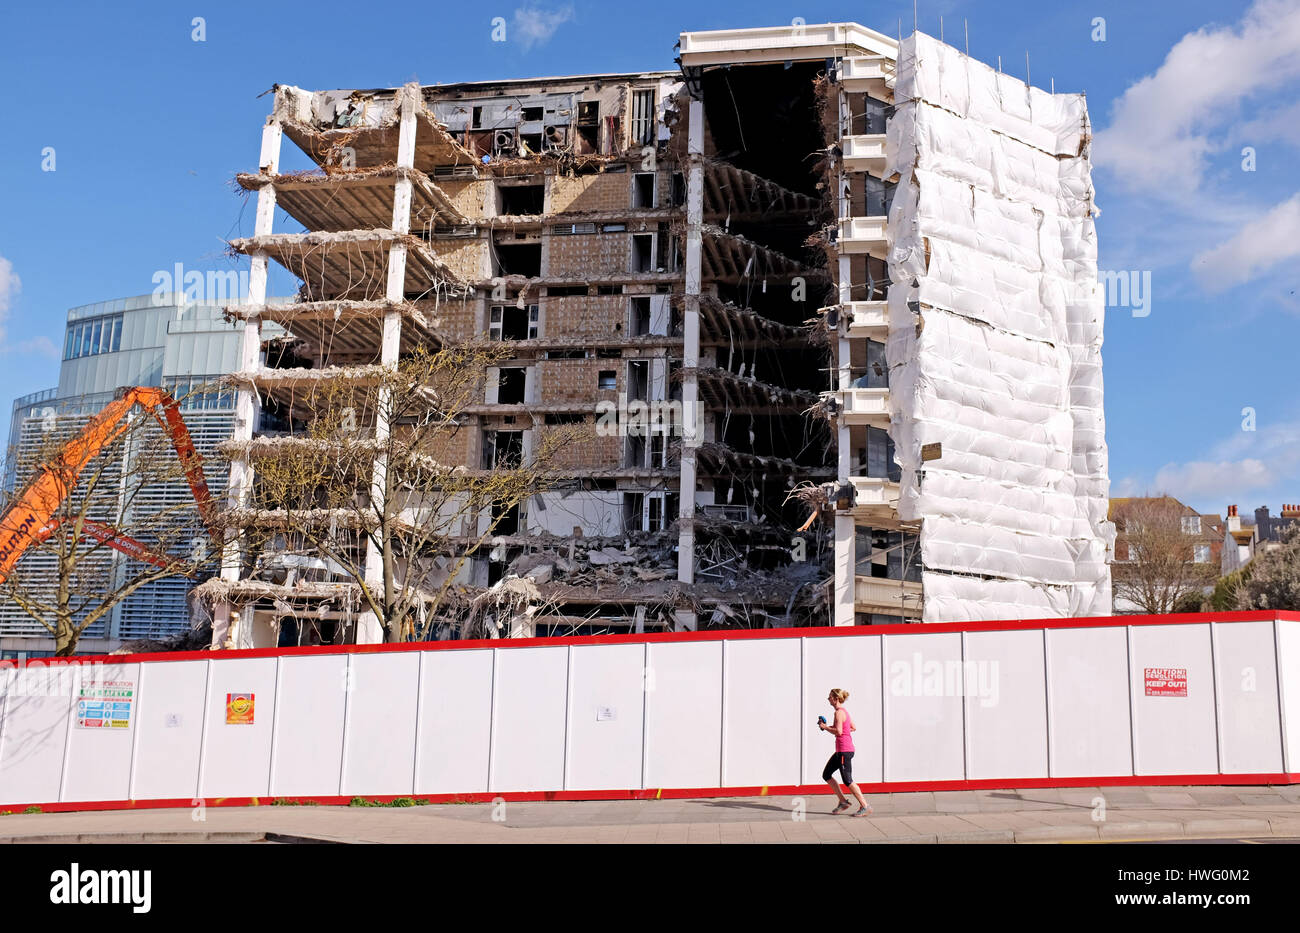 Brighton, UK. 21st Mar, 2017. Demolition work continues on the old Europe headquarters of American Express known - Stock Image